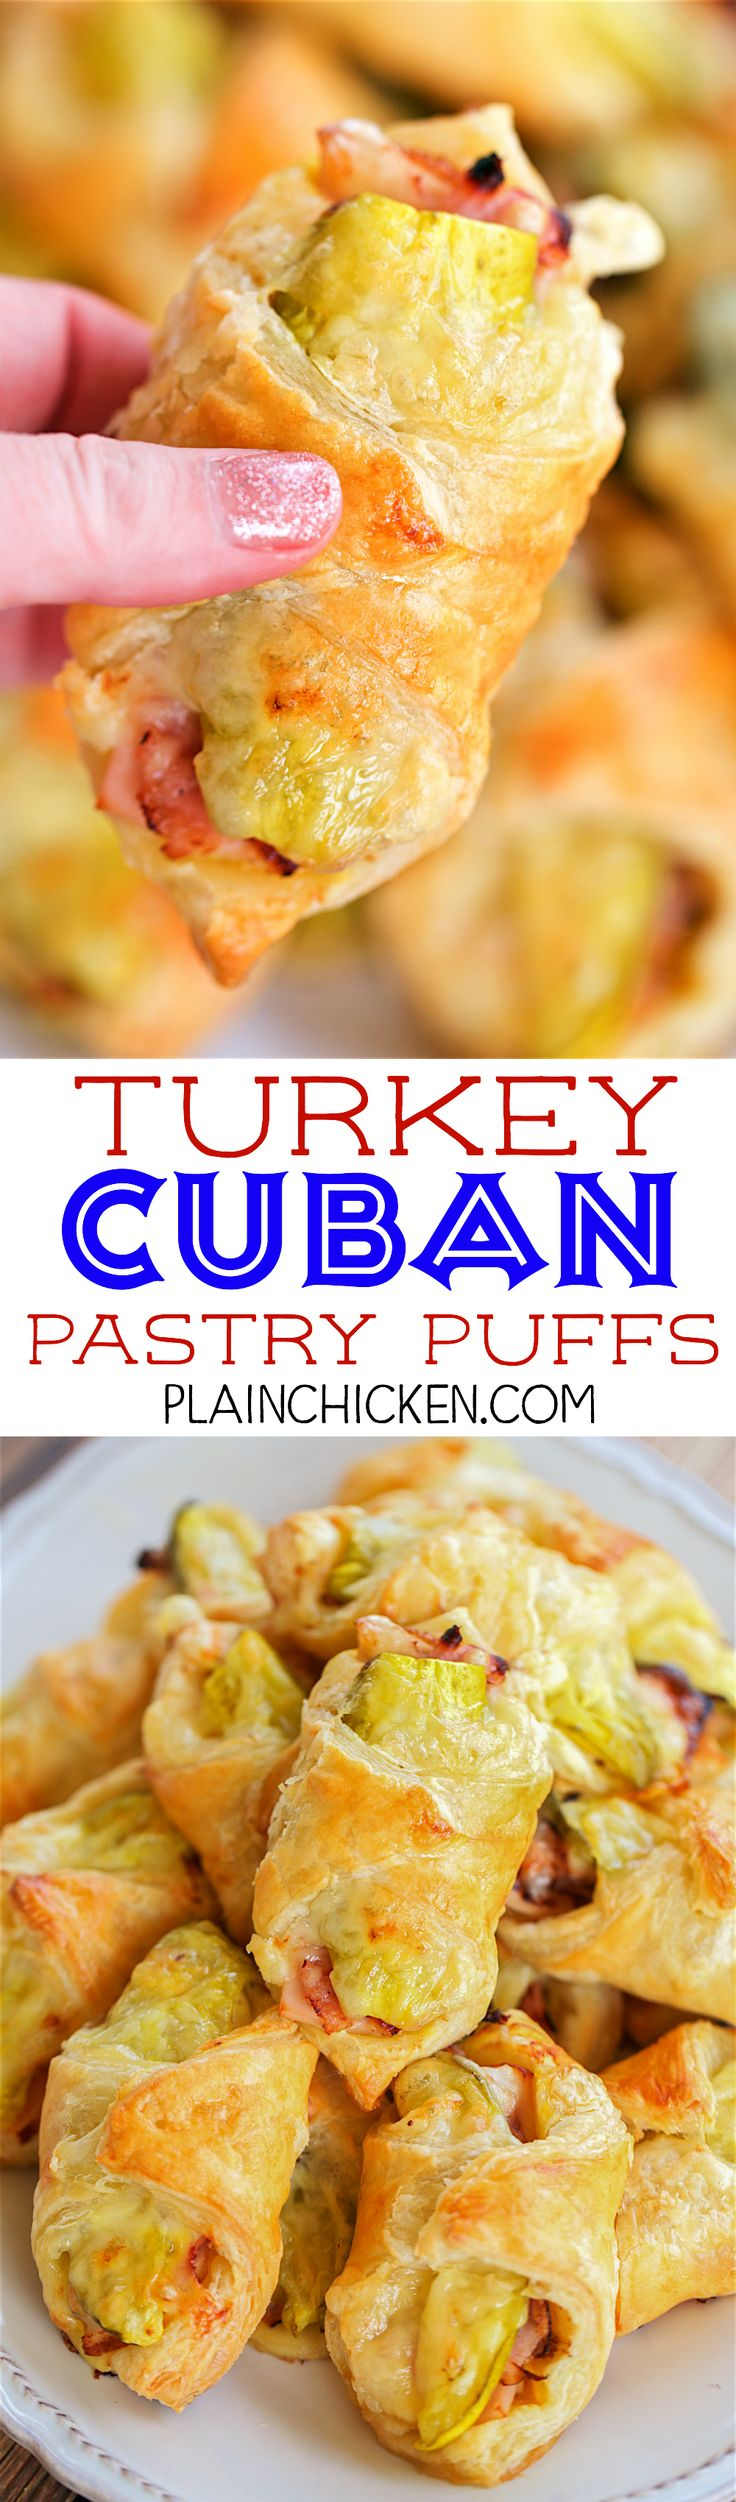 Turkey Cuban Pastry Puffs - great way to use up leftover turkey! SO delicious! Puff pastry filled with mustard, turkey, ham, swiss cheese and pickles. Can make ahead and freeze unbaked. Great for parties, tailgating, lunch or dinner. These taste FANTASTIC!